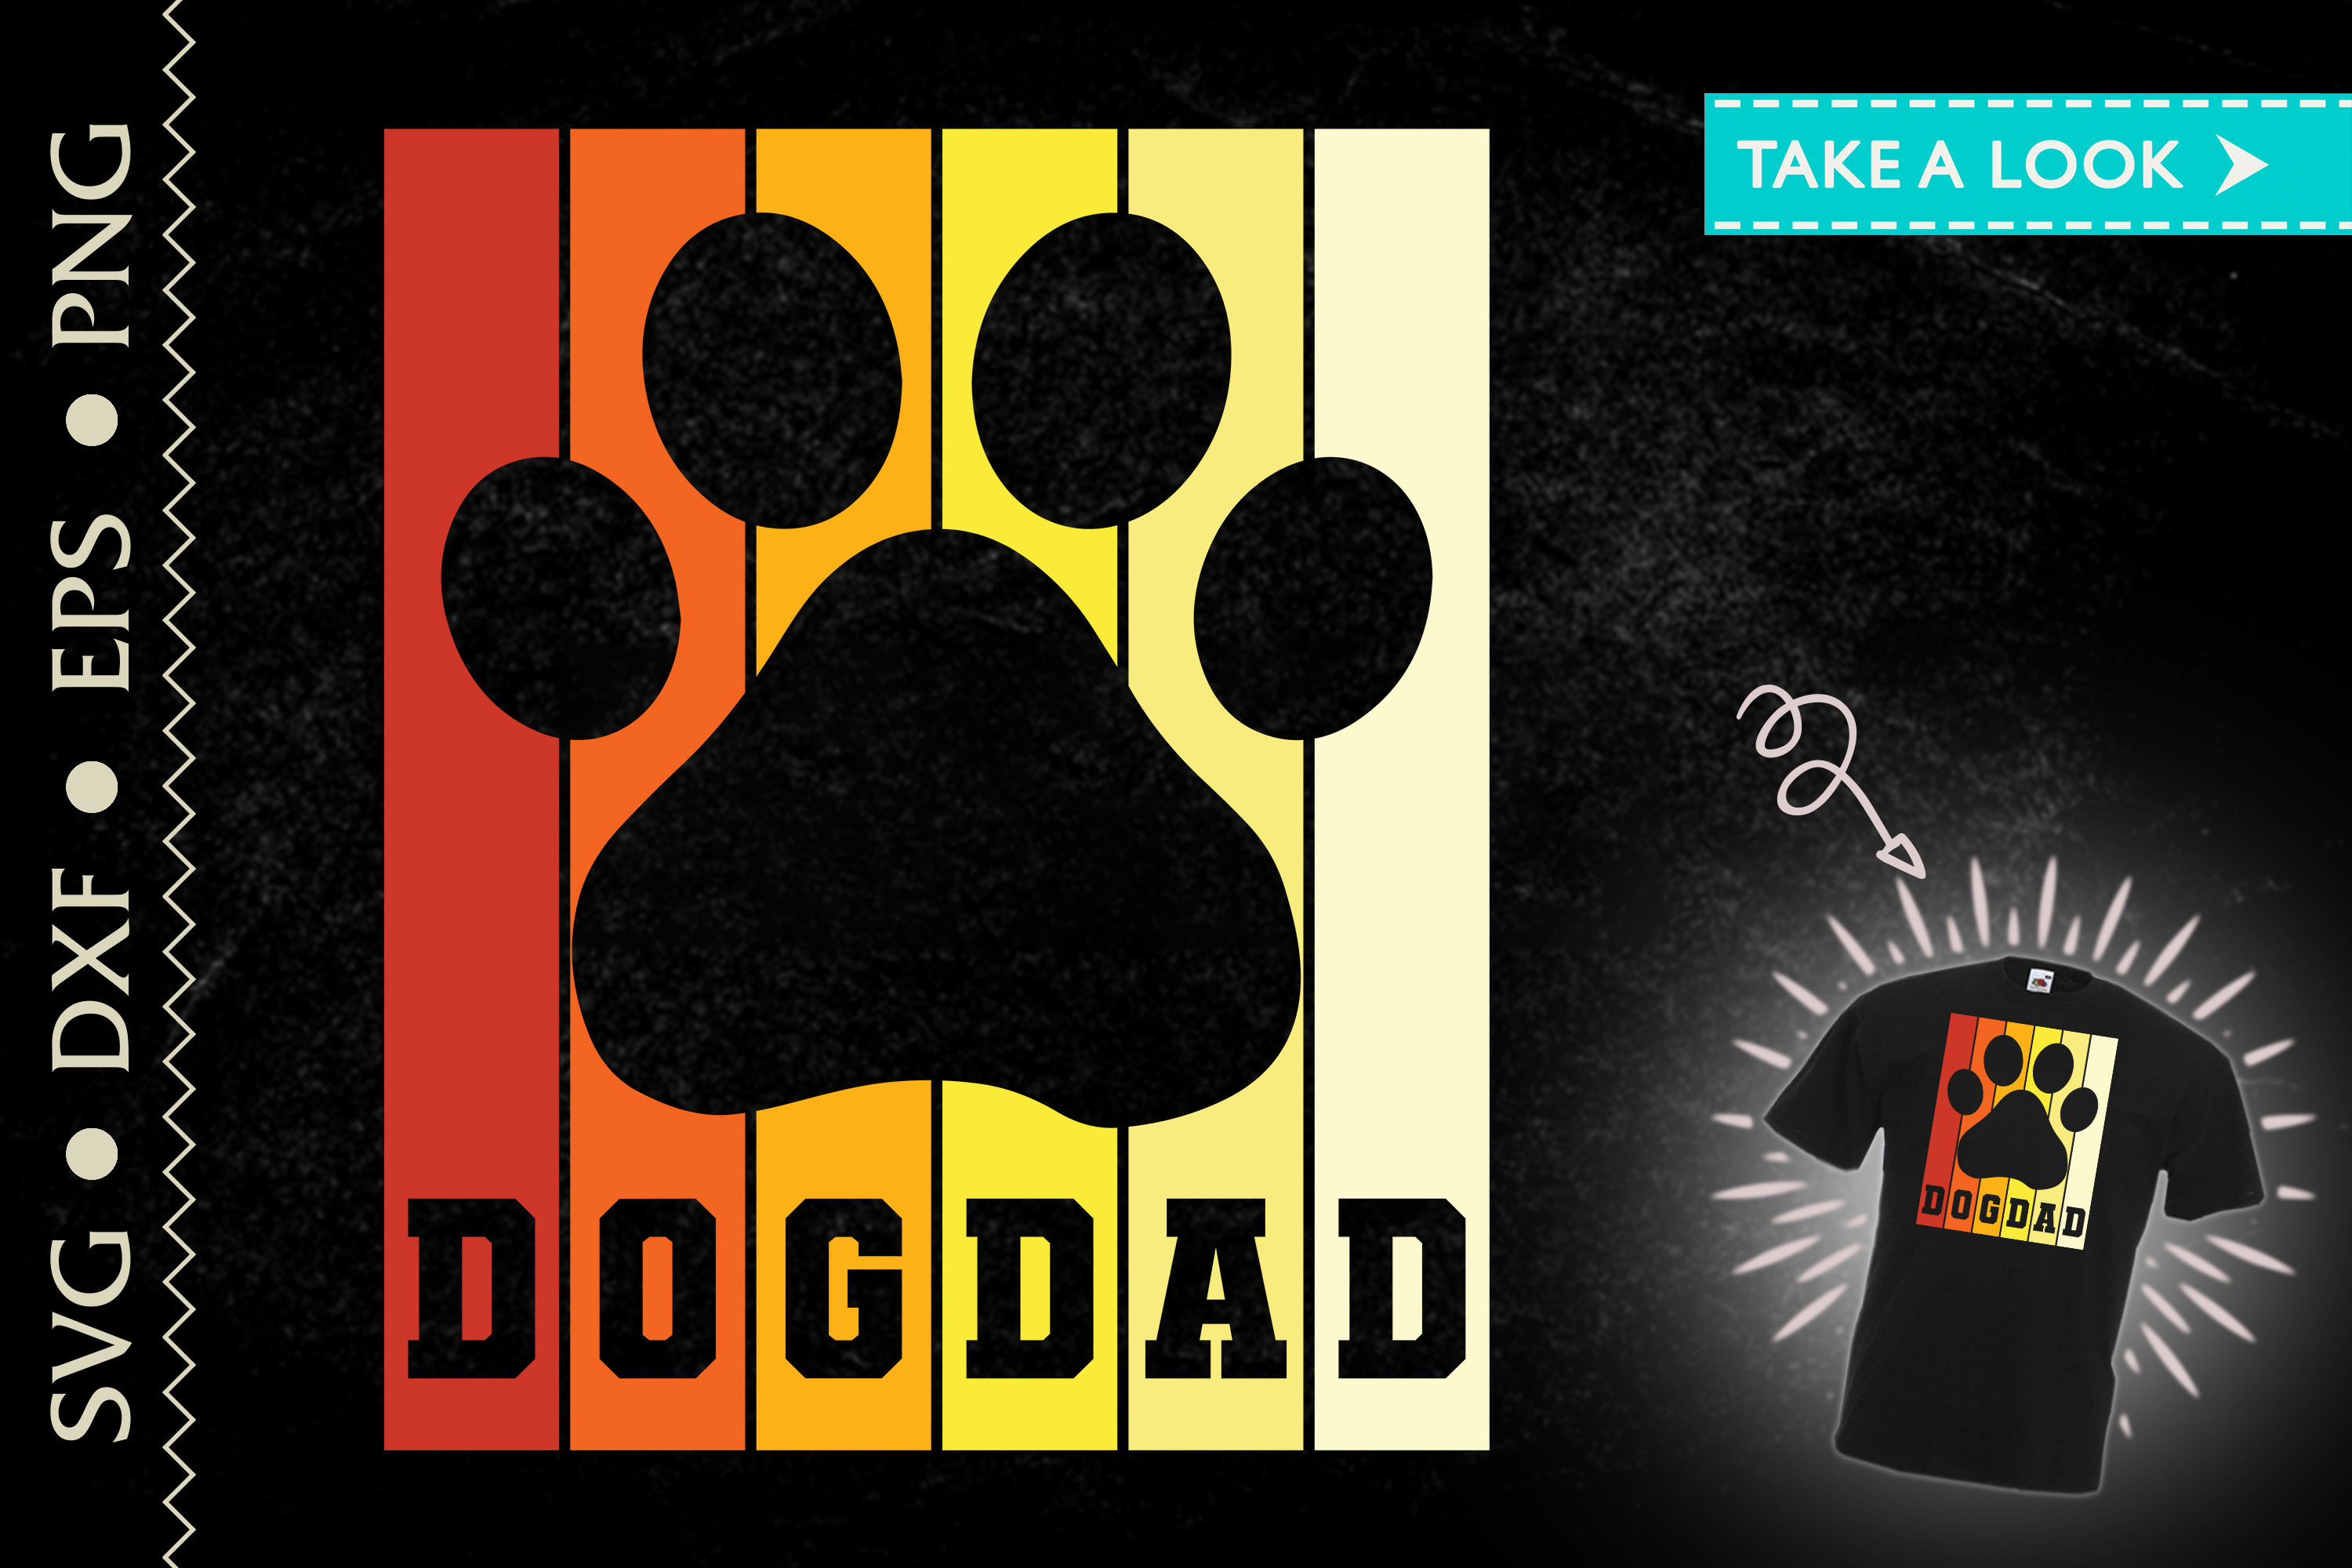 Dogdad Dog Dad Father's Day Gift SVG File